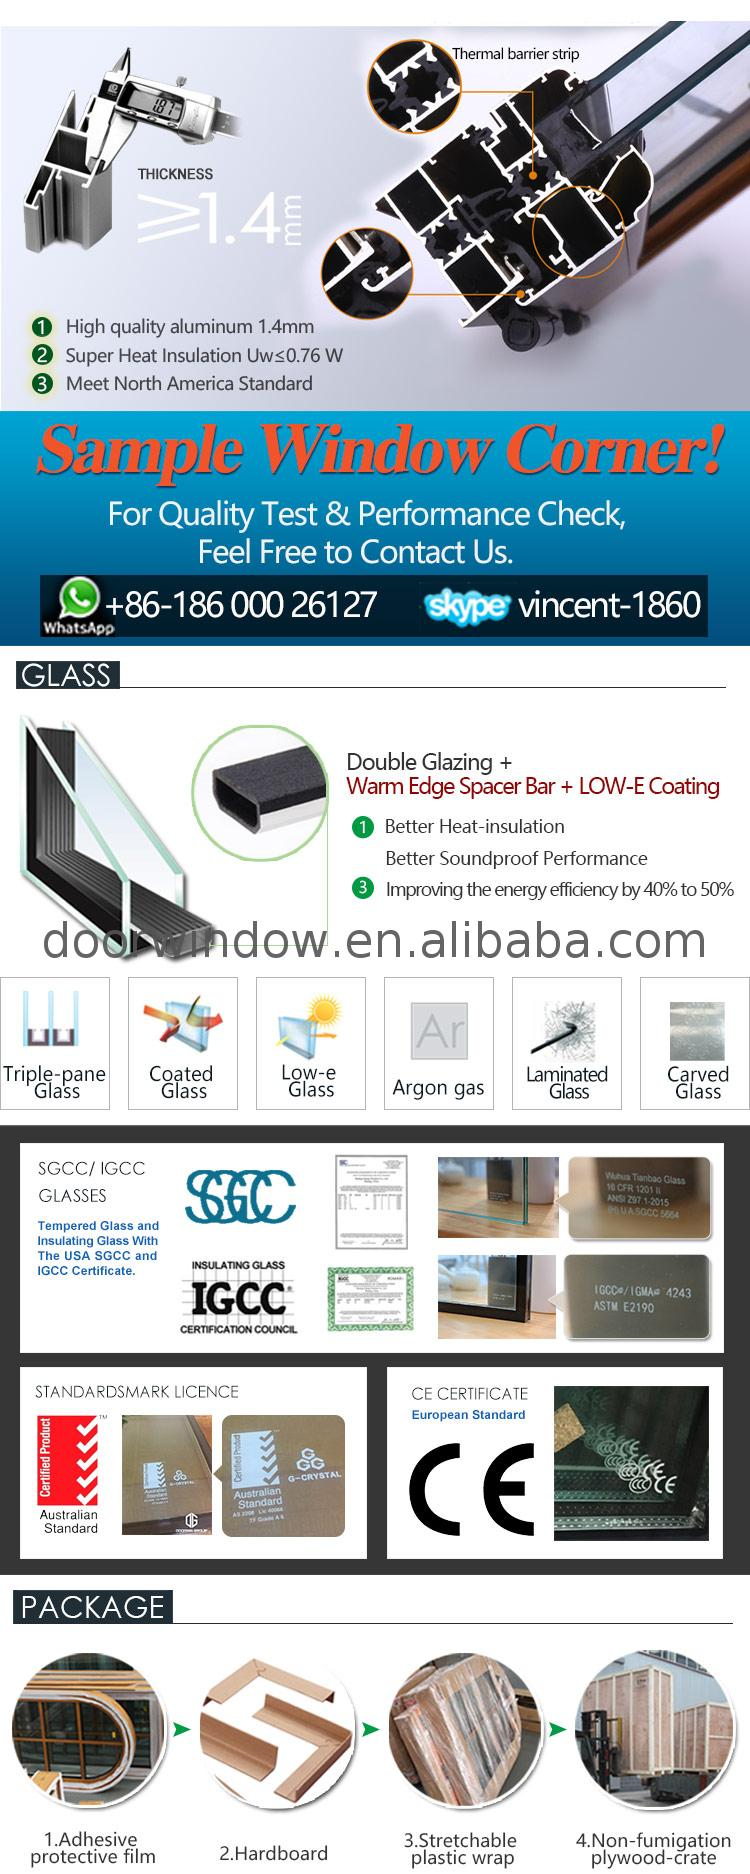 Economical awning windows economic window easy cleaning aluminum